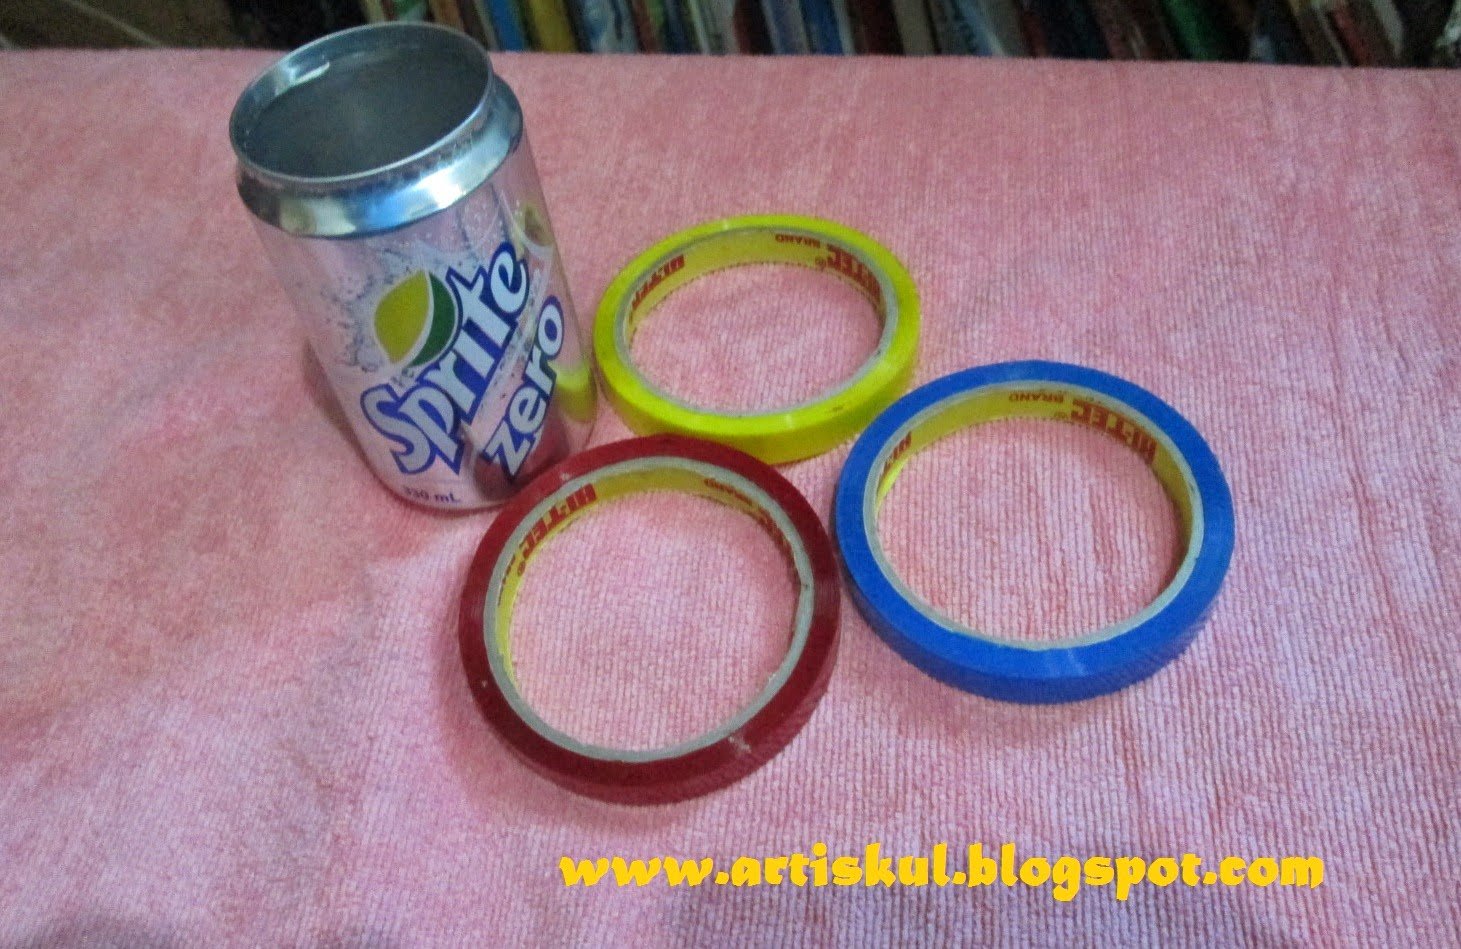 Art School: How to recycle empty soda cans into flower pots